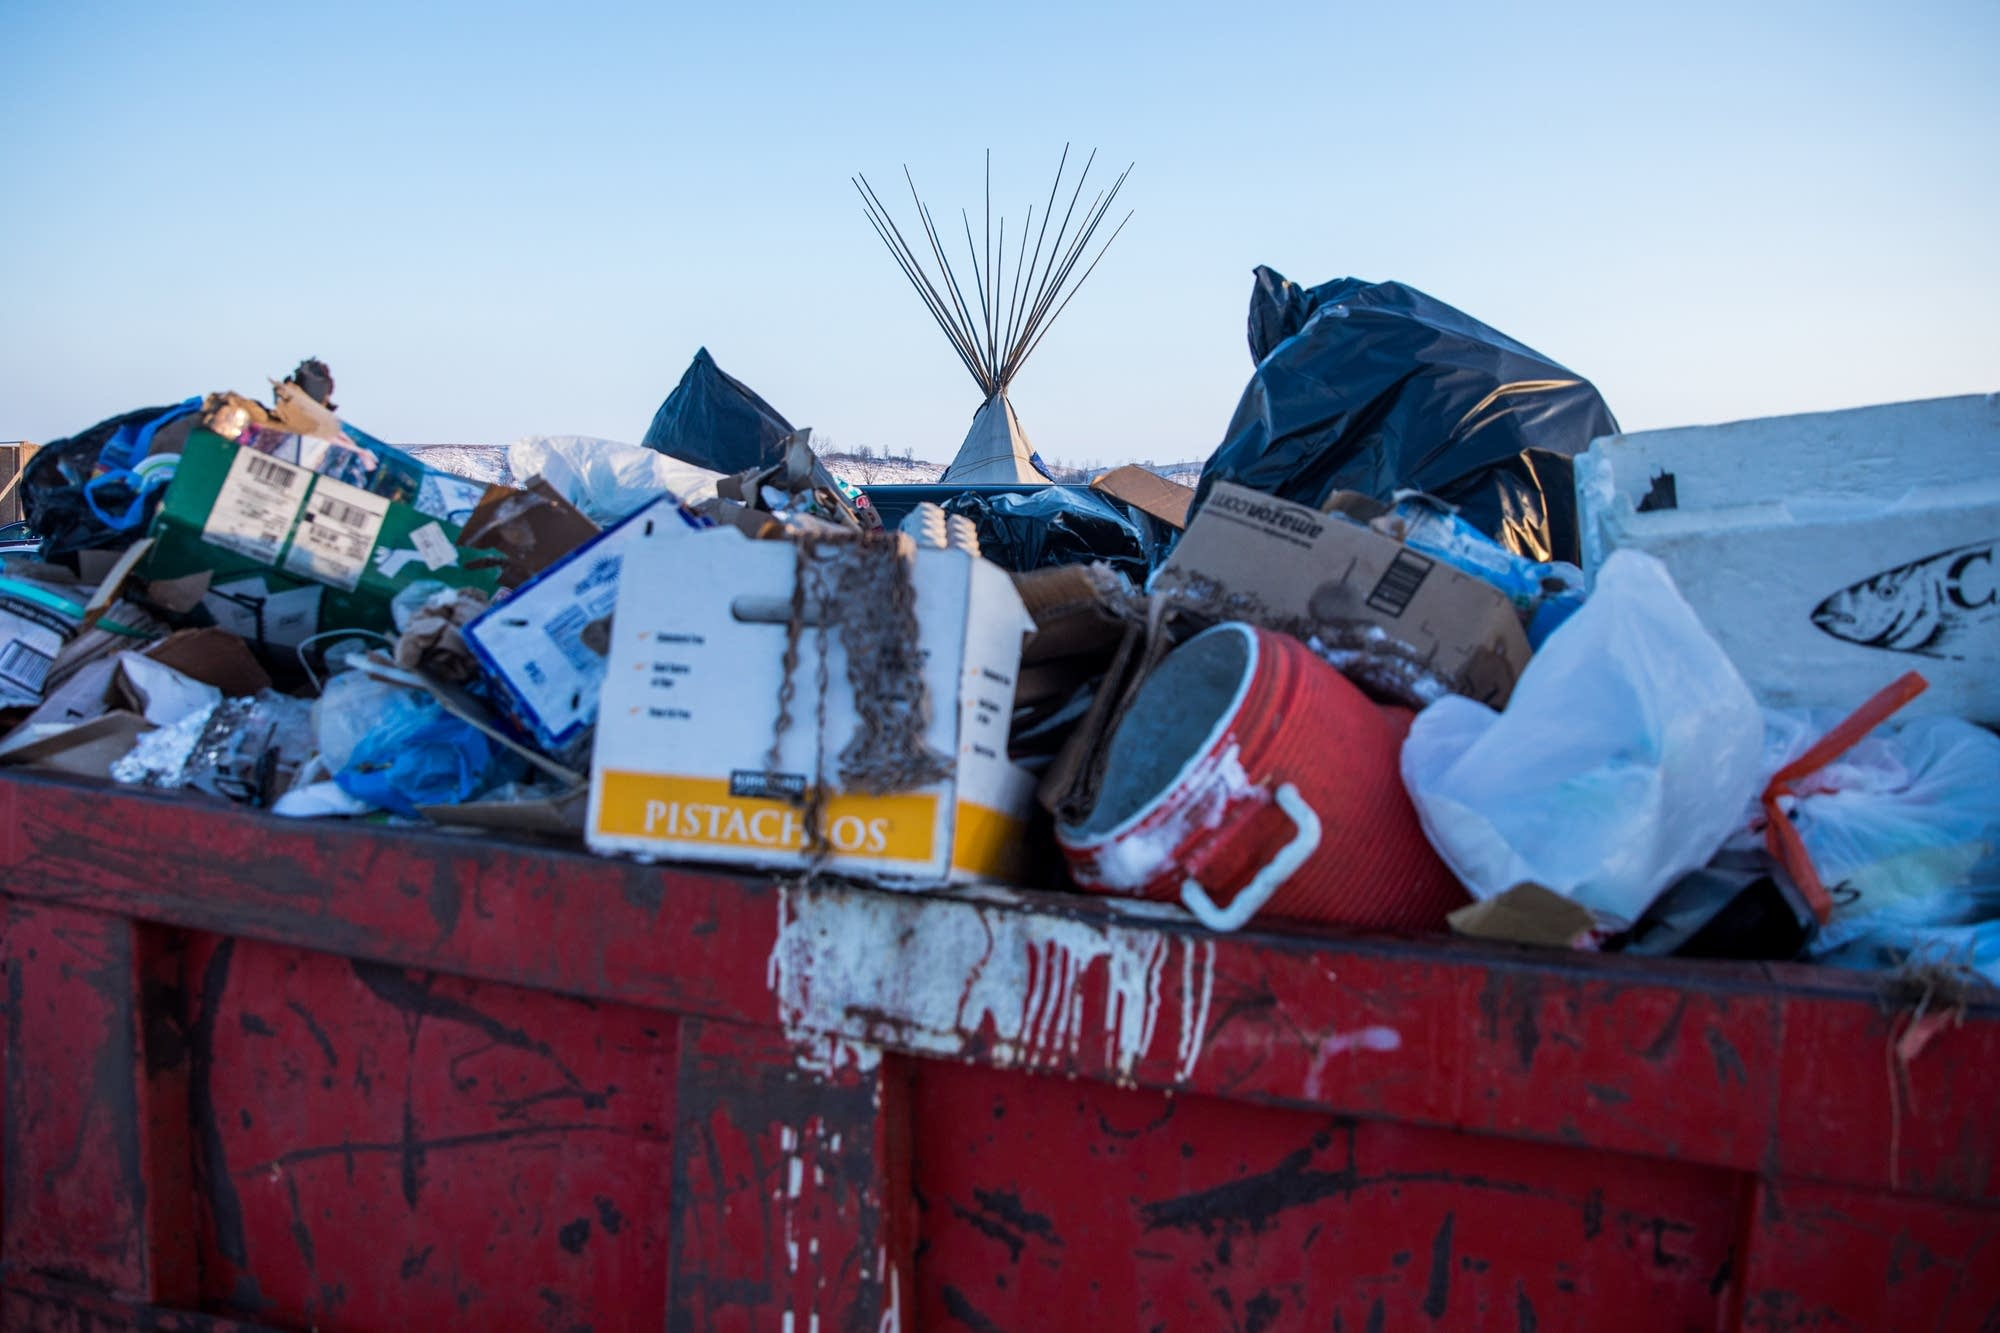 A teepee is seen from behind a dumpster.